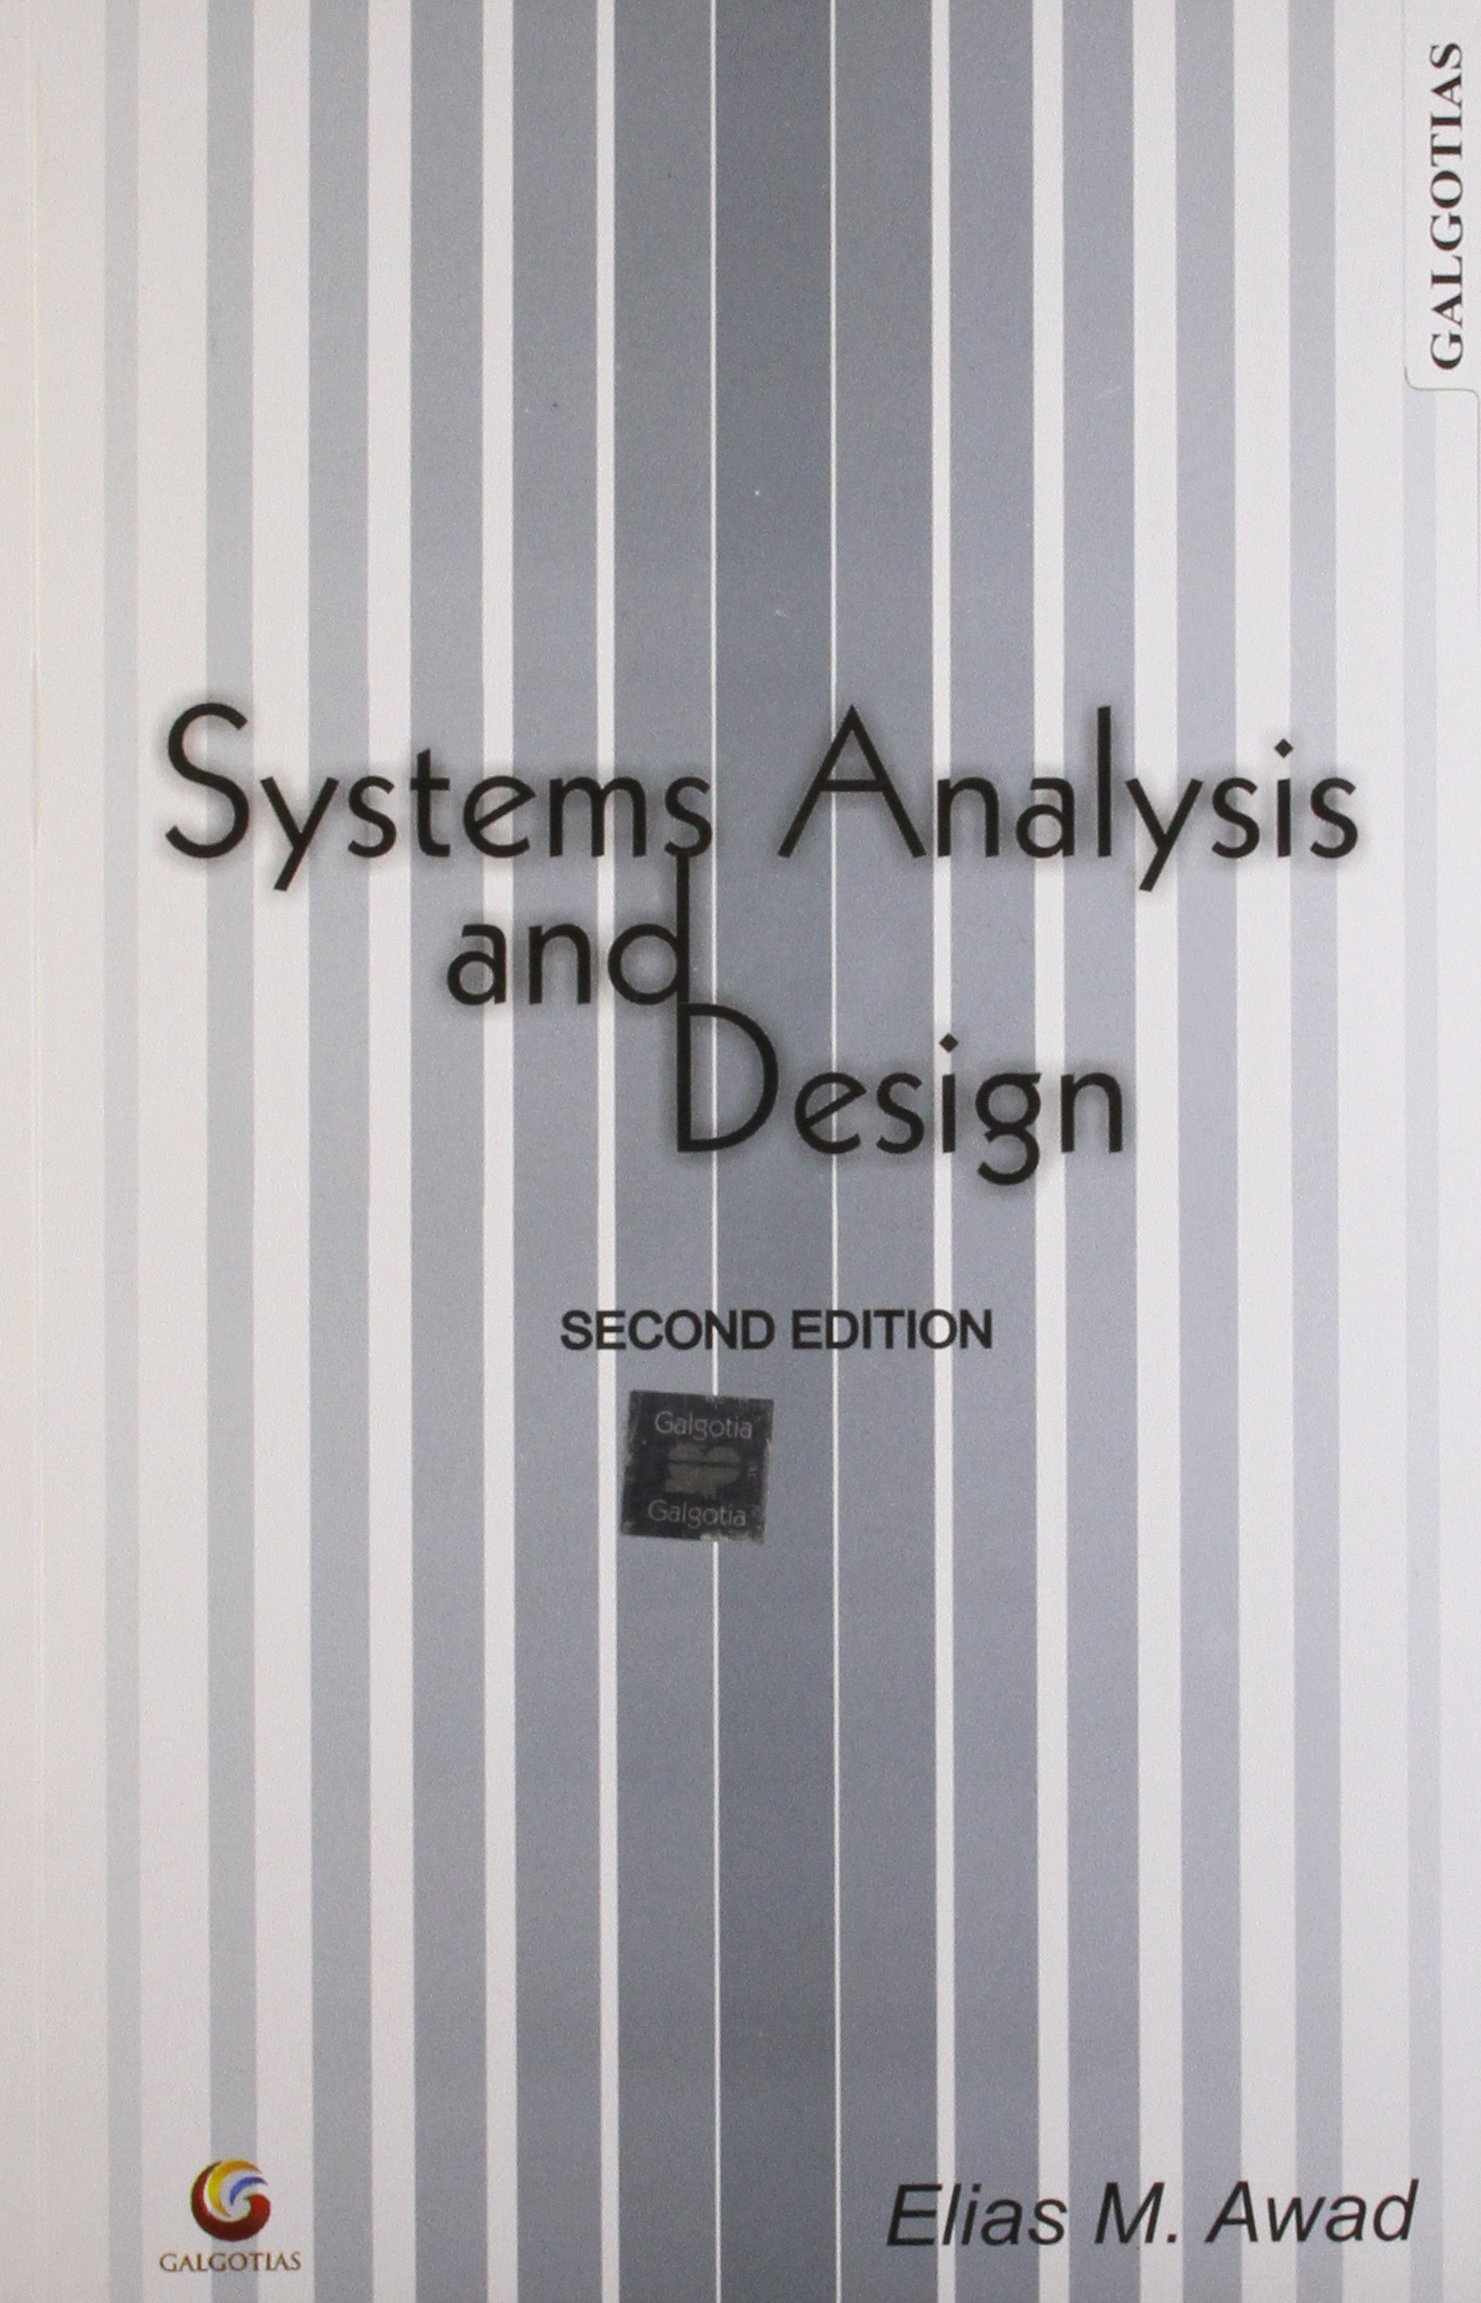 Systems Analysis And Design Elias M Awad 9788175156180 Amazon Com Books